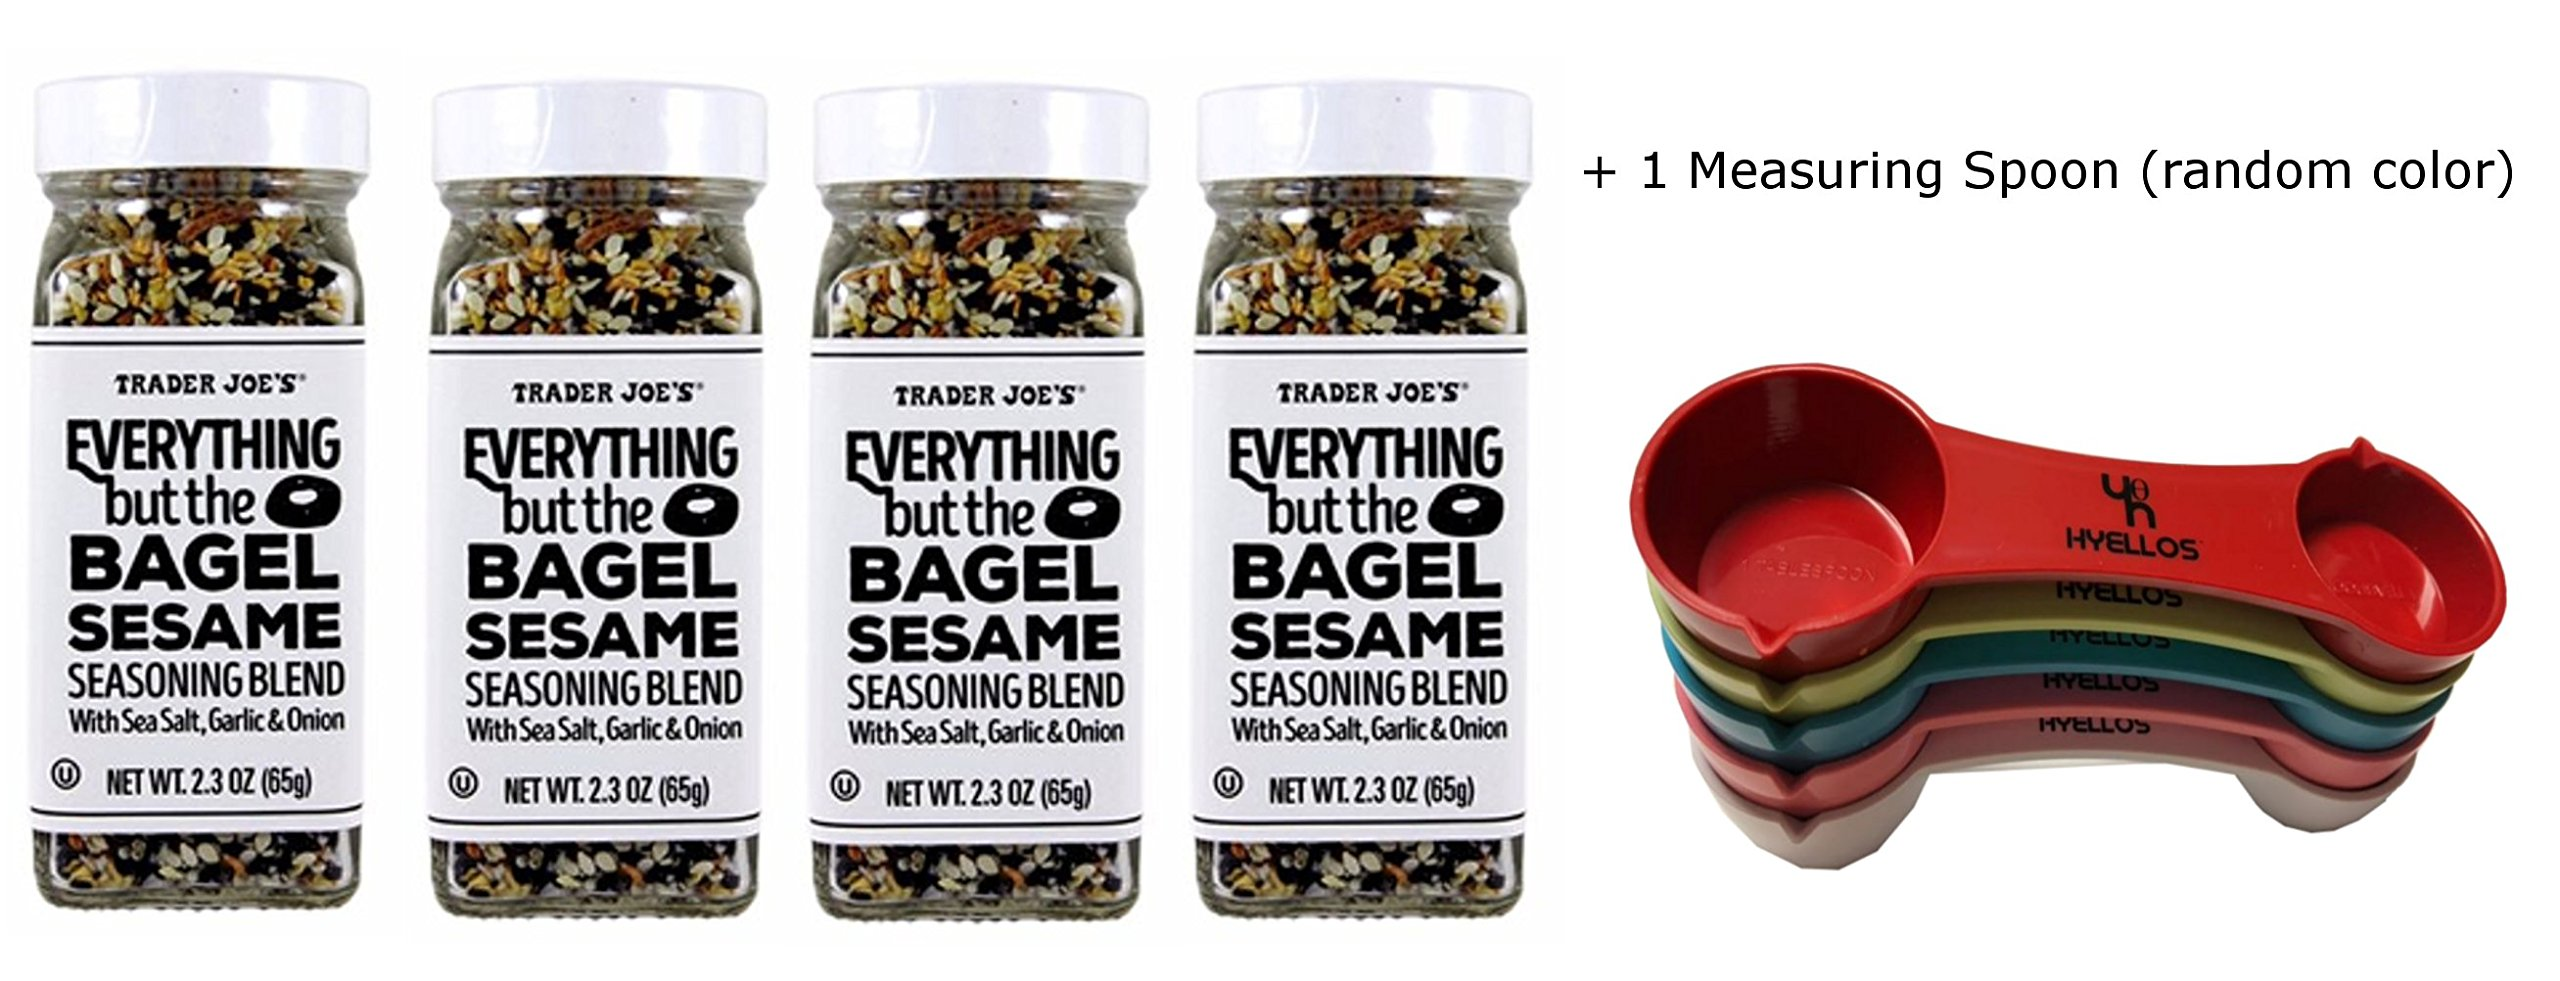 Trader Joes Everything But The Bagel Sesame Seasoning Blend (Pack of 4) and Exclusive Hyellos Measuring Spoon